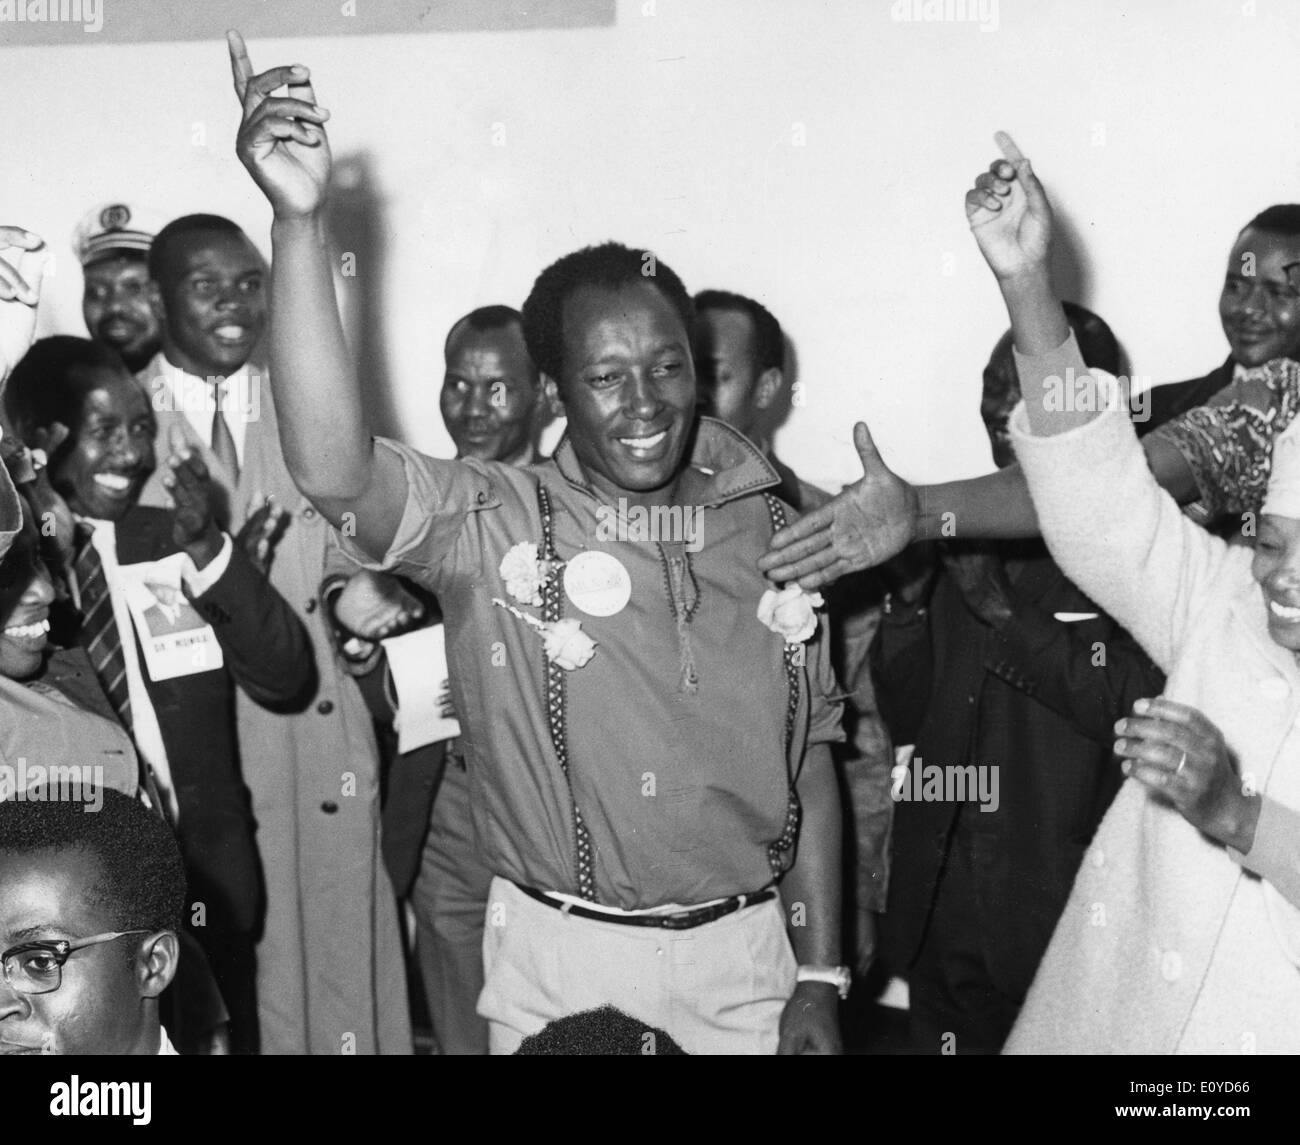 Dec. 4, 1969 - Nairobi, Kenya - Dr. NJOROBE MUNGAI celebrates, by waving his hands showing the 'Kanu' symbol after he retained his seat of the Dagorreti. - Stock Image